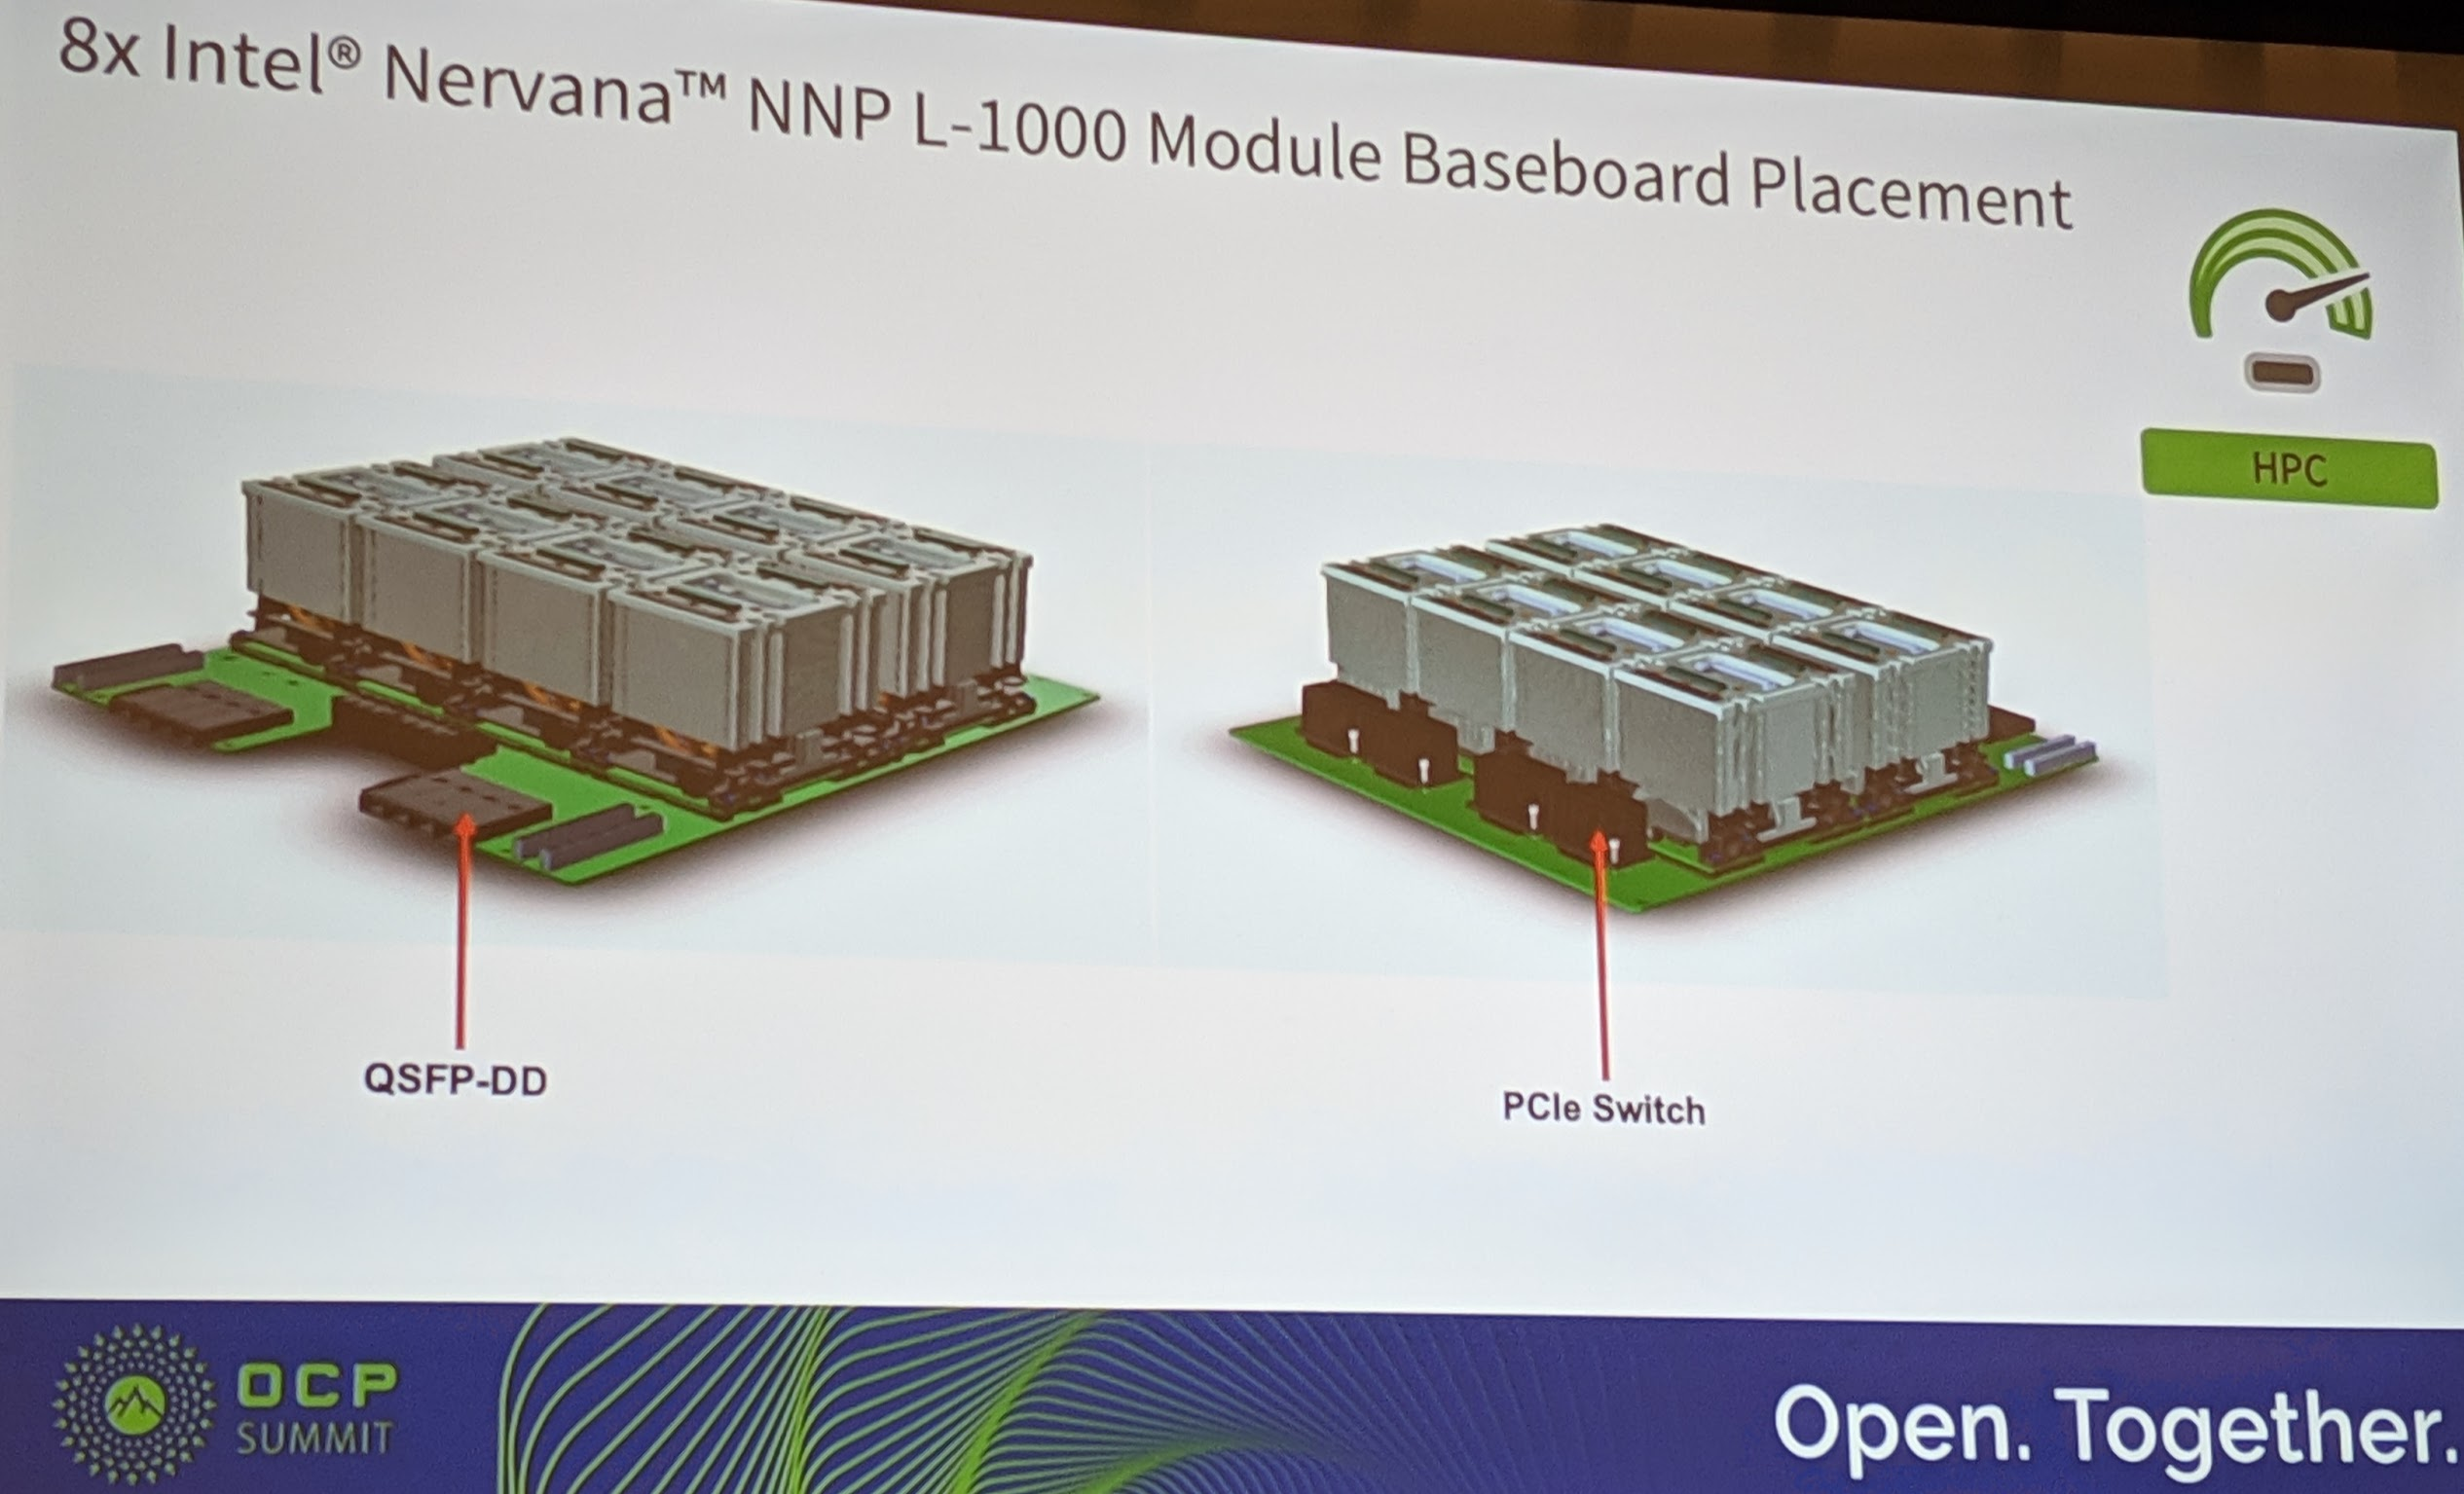 8x Intel Nervana NNP L 1000 System Baseboard